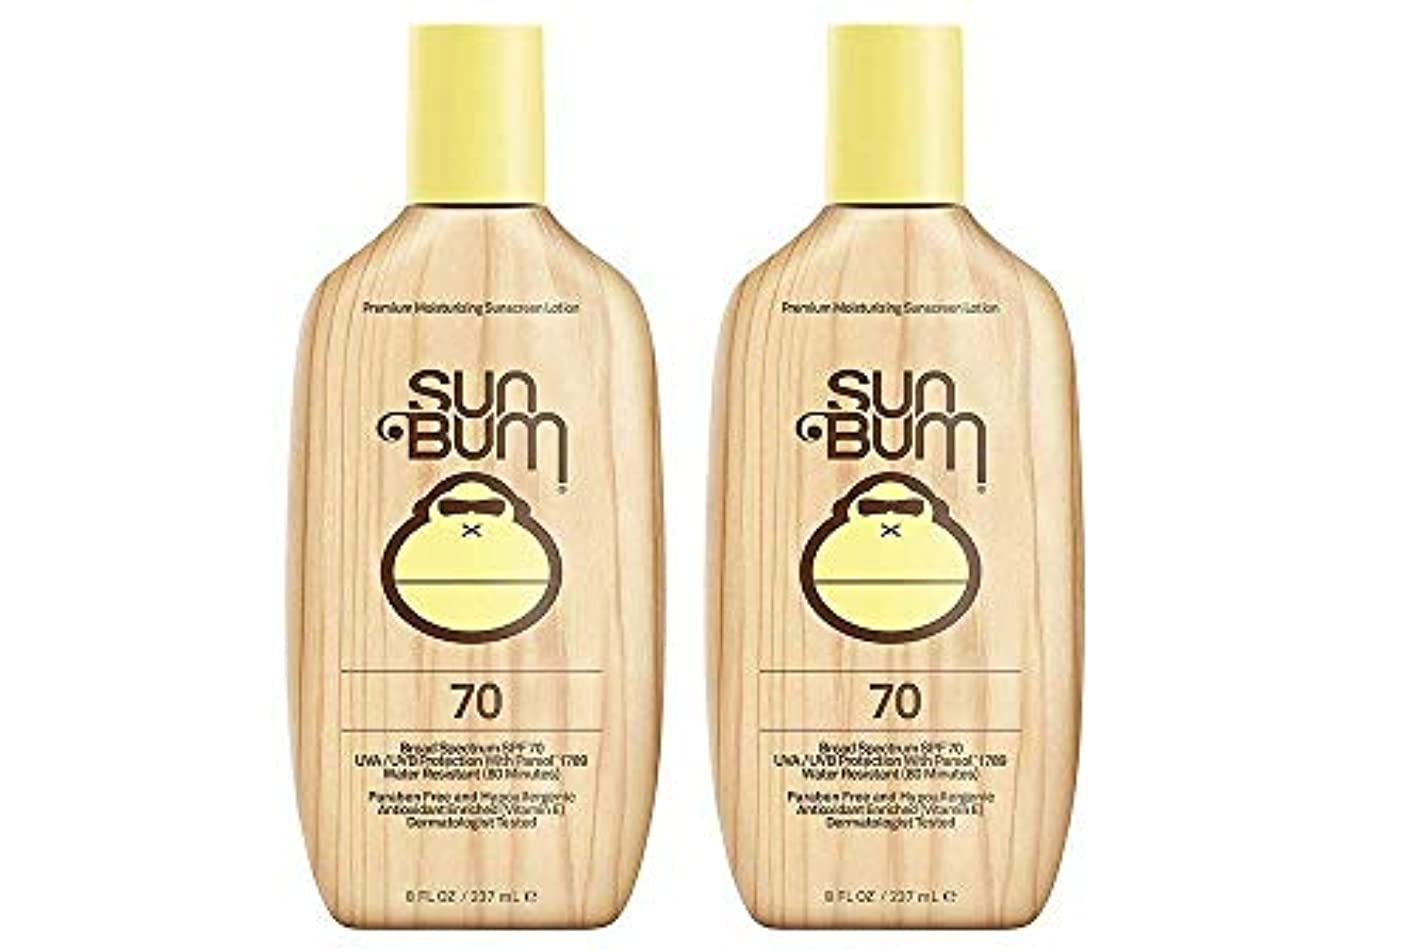 器具賃金フィクションSun Bum SPF 70 Lotion Sunscreen - by Sun Bum